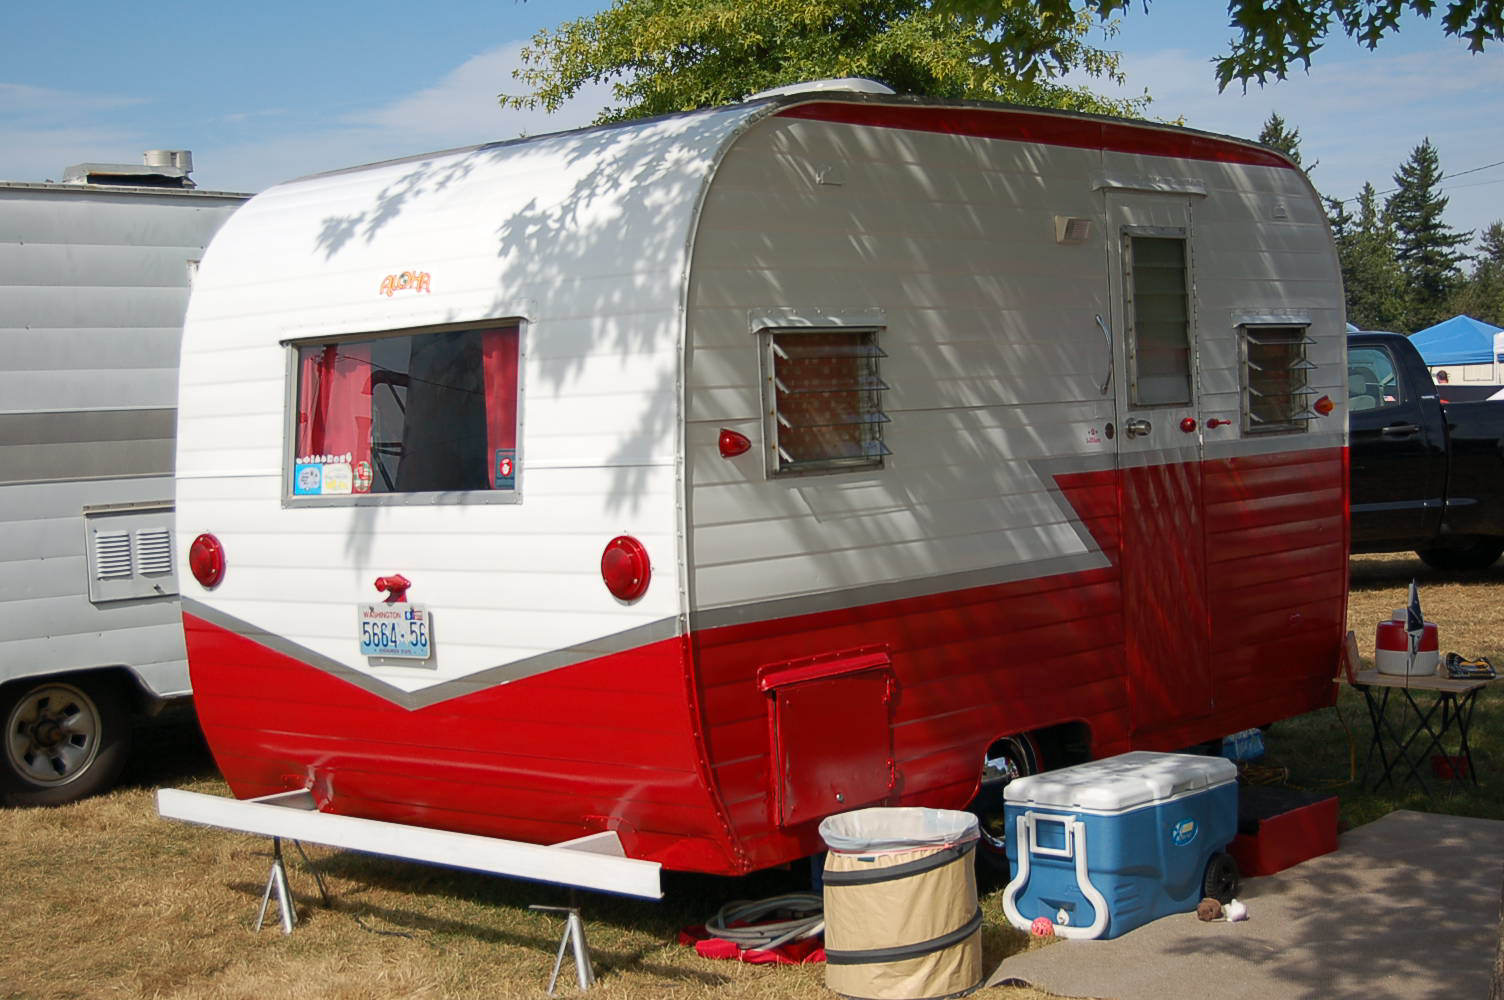 Beautifully Restored 1962 Aloha 15 Vintage Travel Trailer Painted In Classic Red And White Color